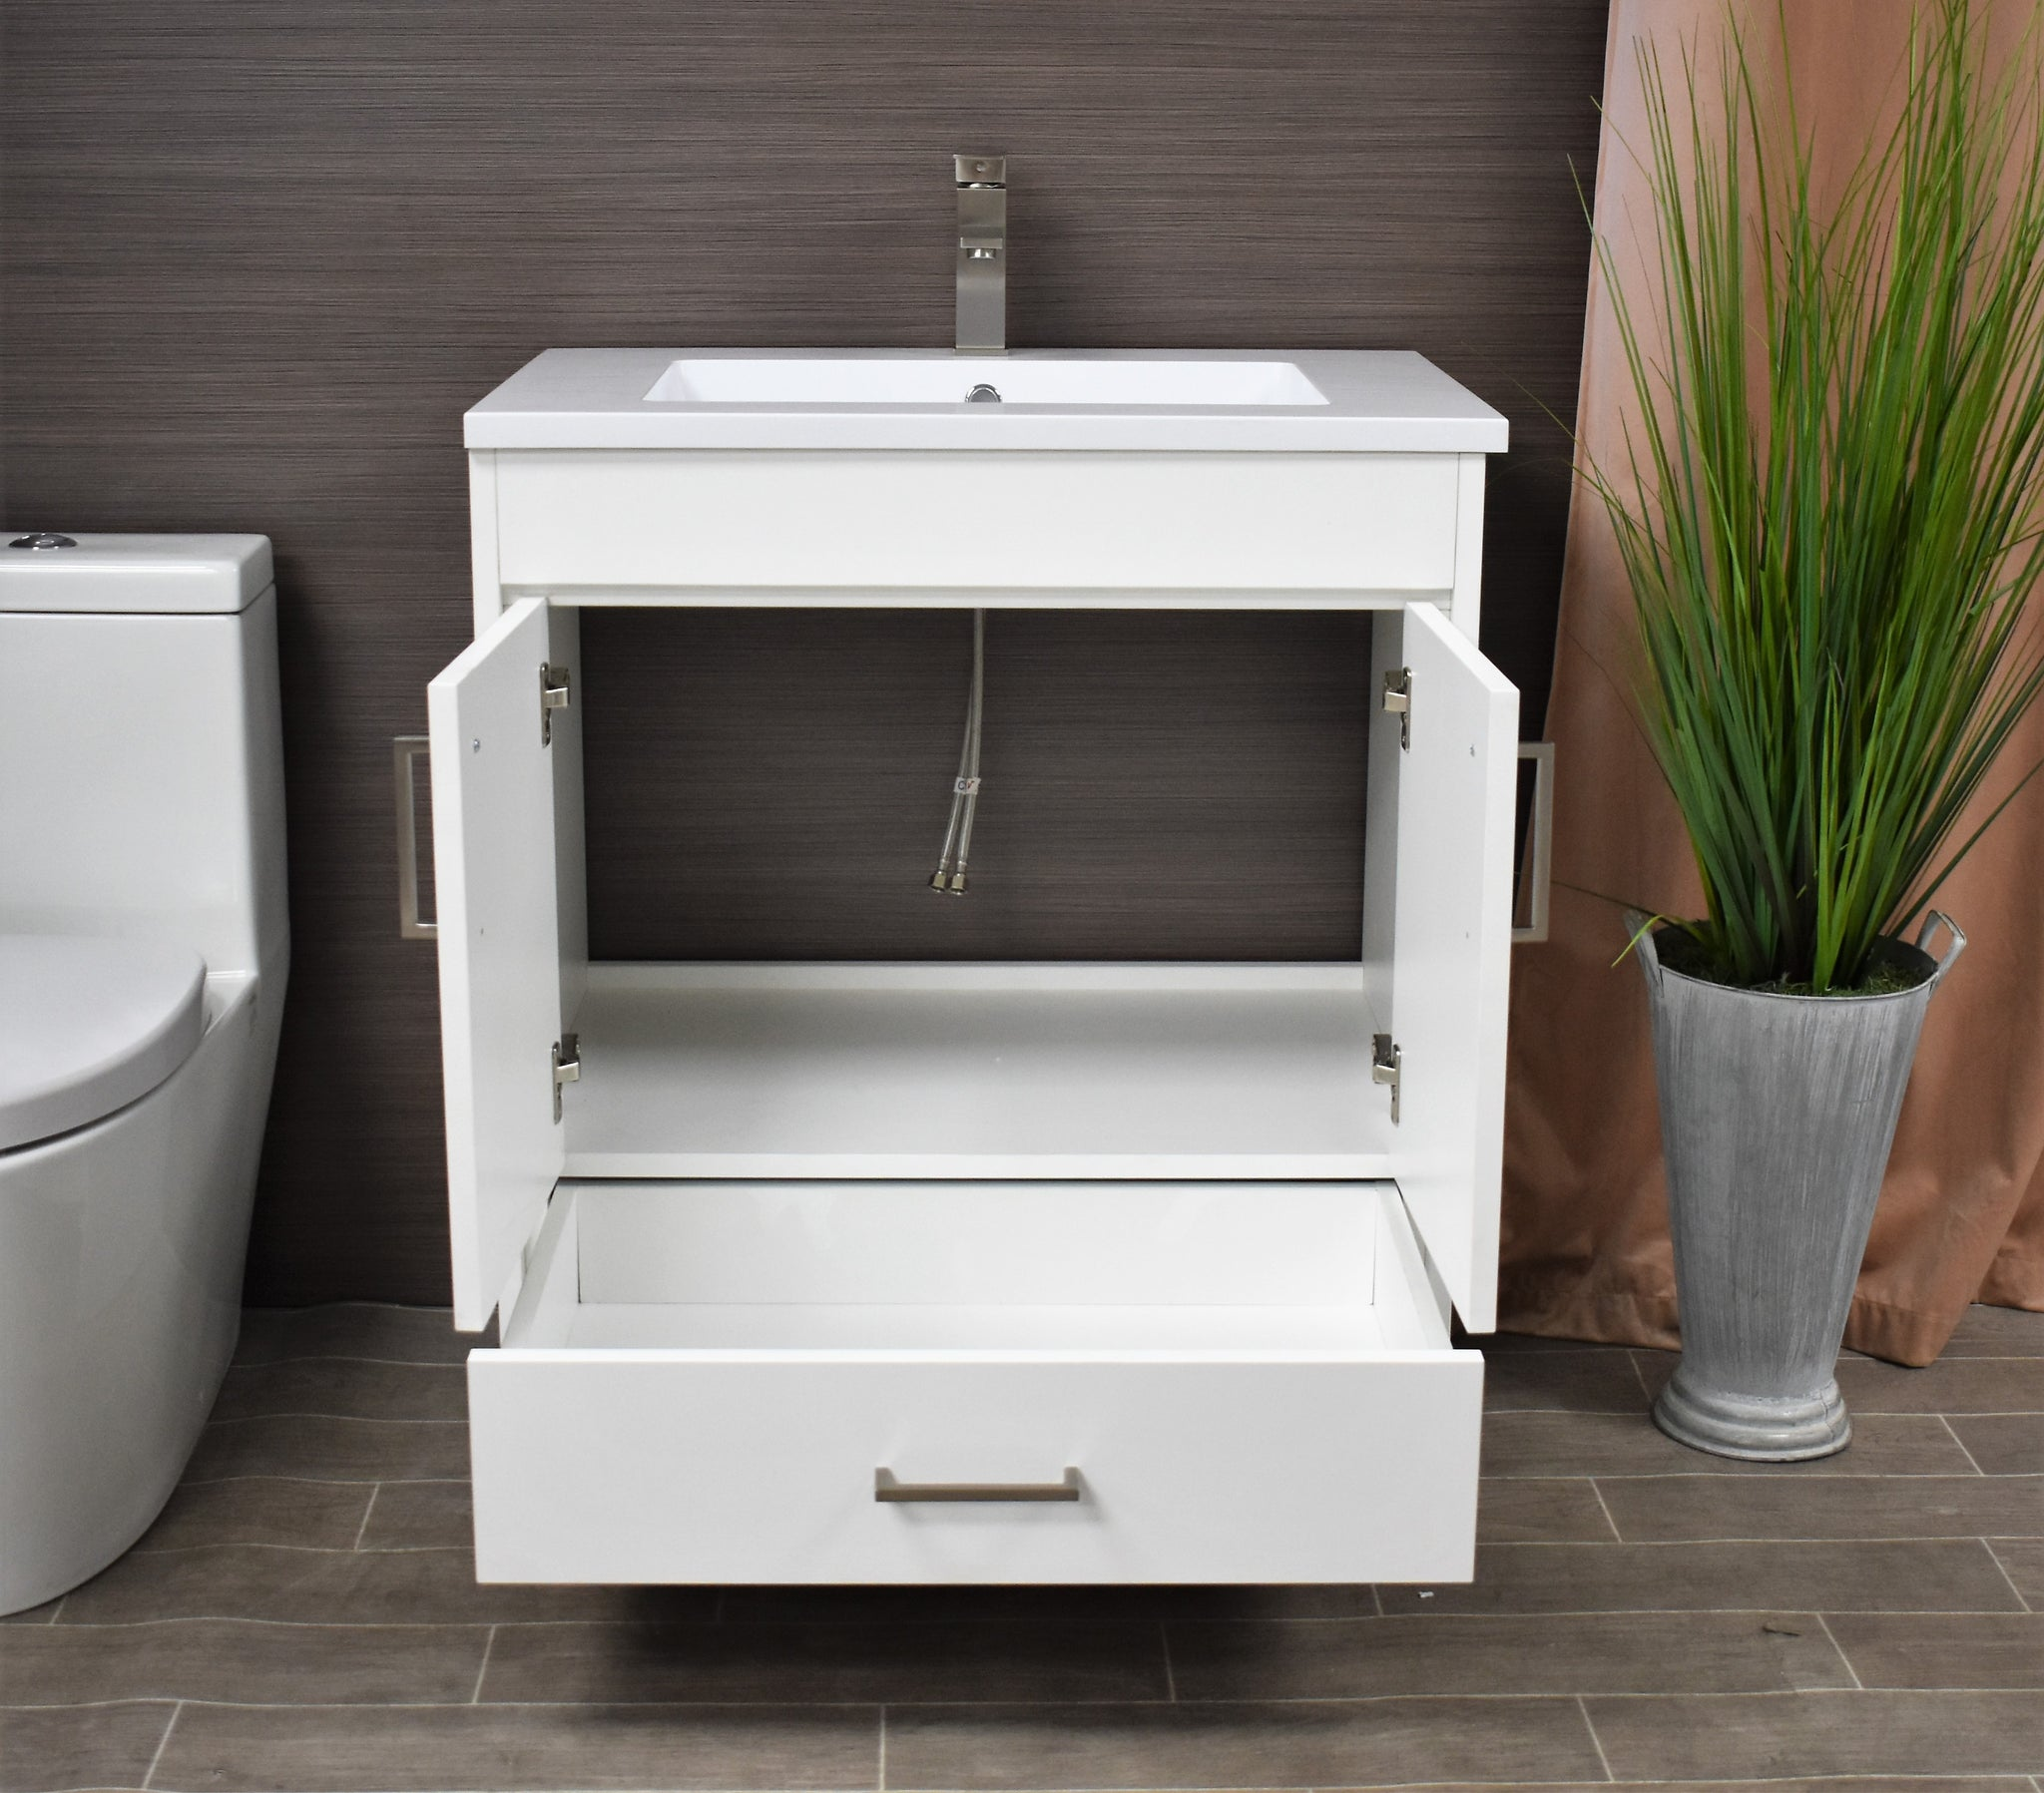 "Rio 24"" Modern Bathroom Vanity in White with Acrylic Top and Brushed Nickel Handles"